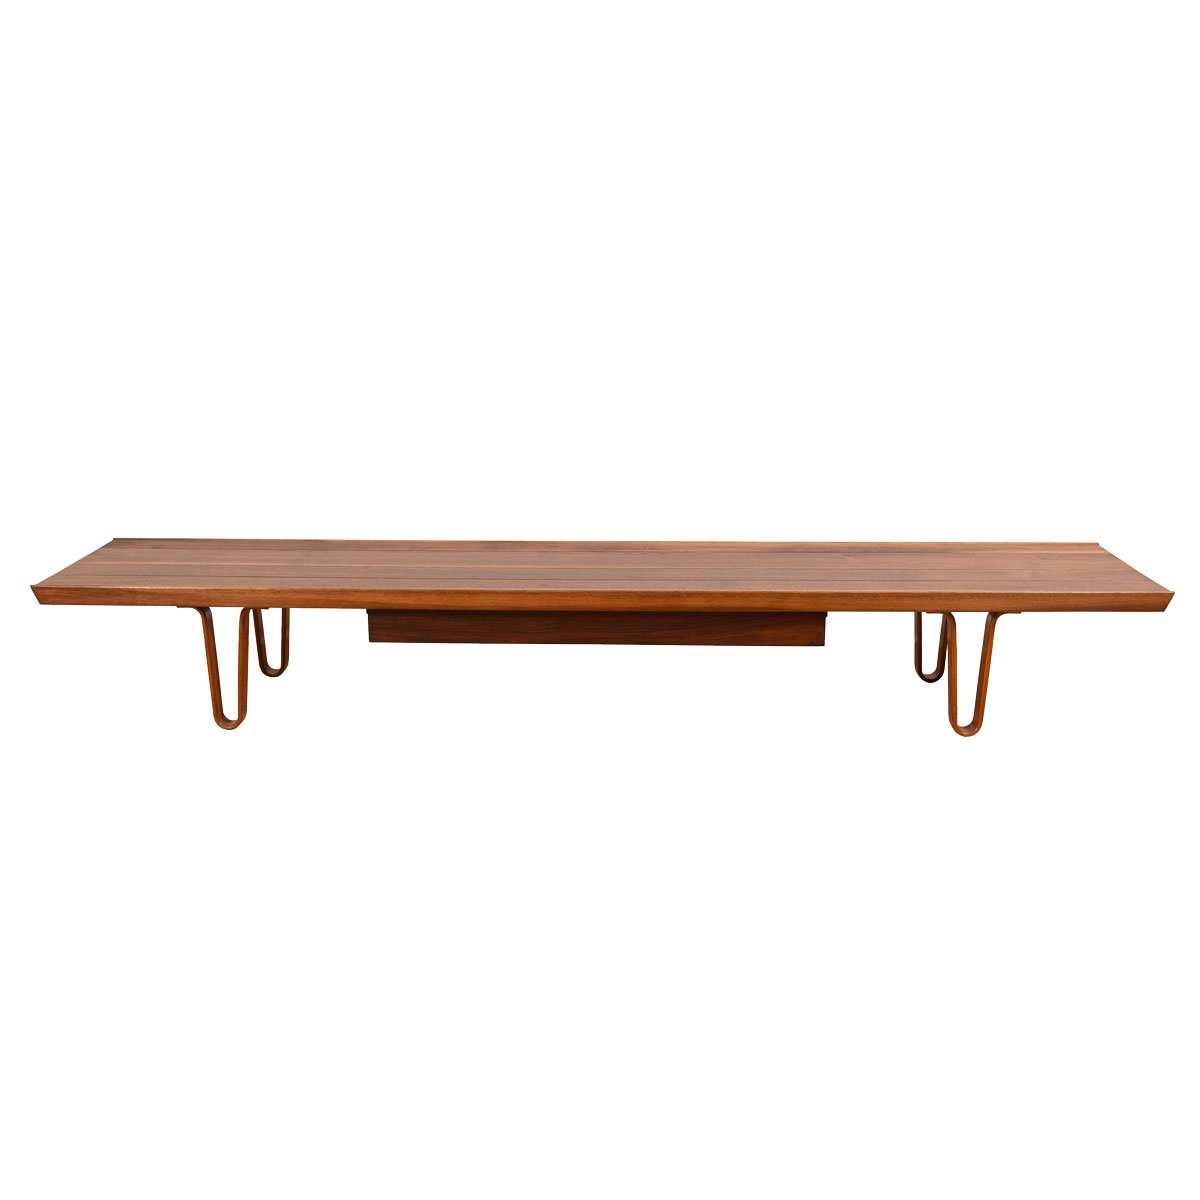 """Super """"Long-John"""" 84″ Coffee Table / Bench with Drawer by Edward Wormley for Dunbar"""